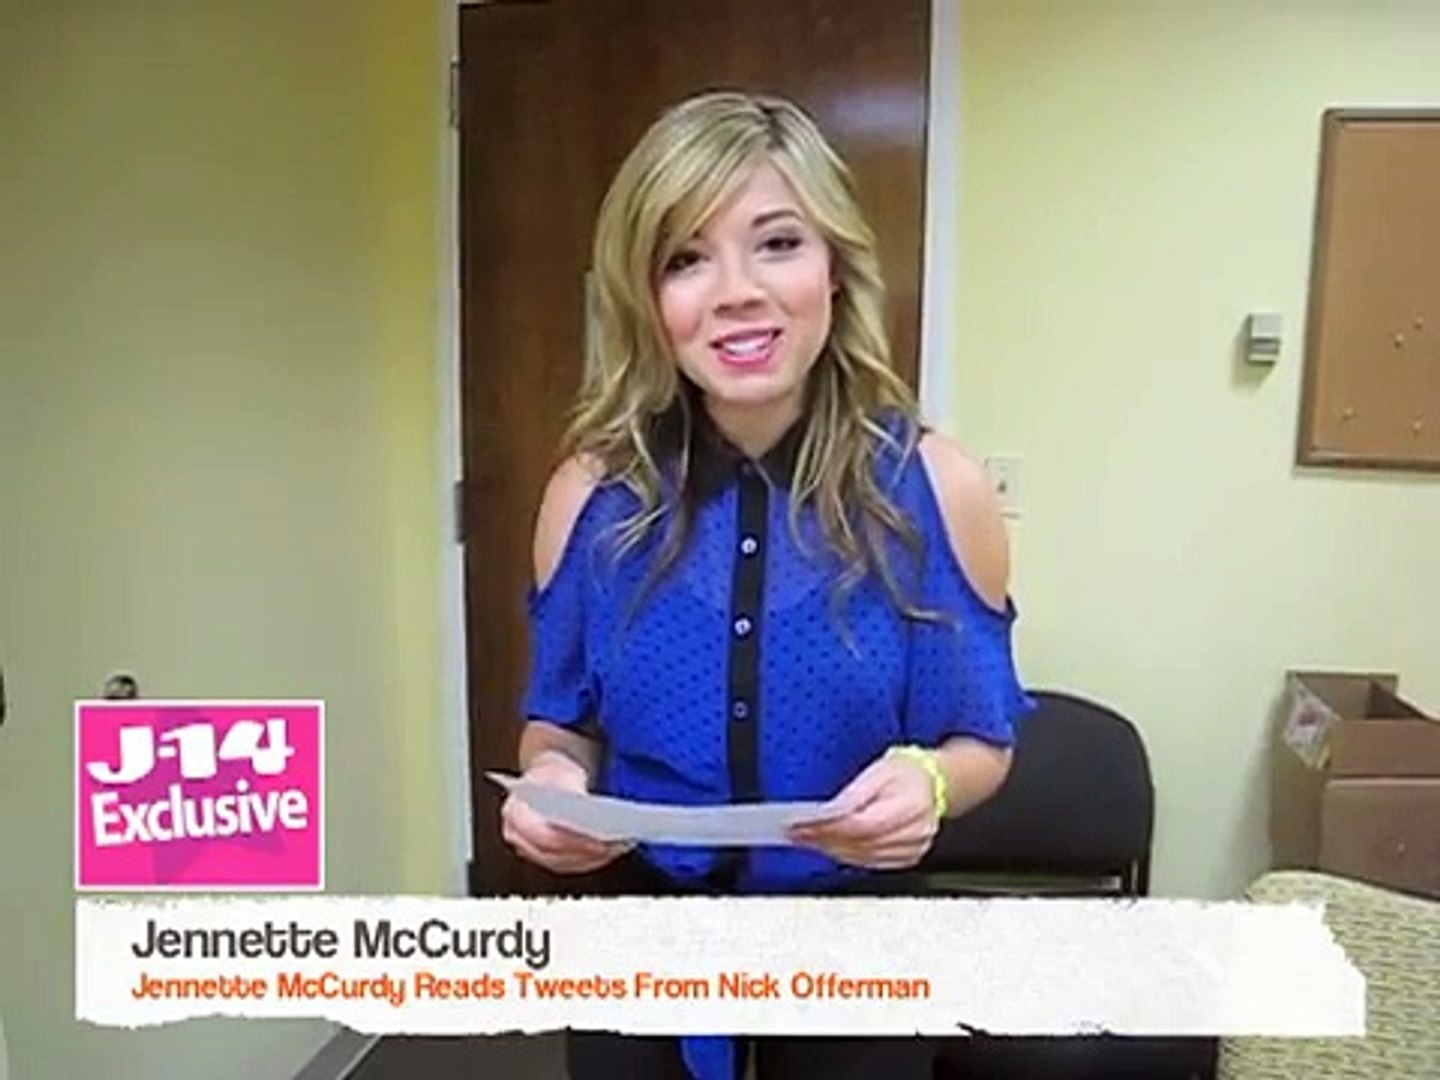 J 14 Exclusive Jennette Mccurdy Reads Tweets From Nick Offerman